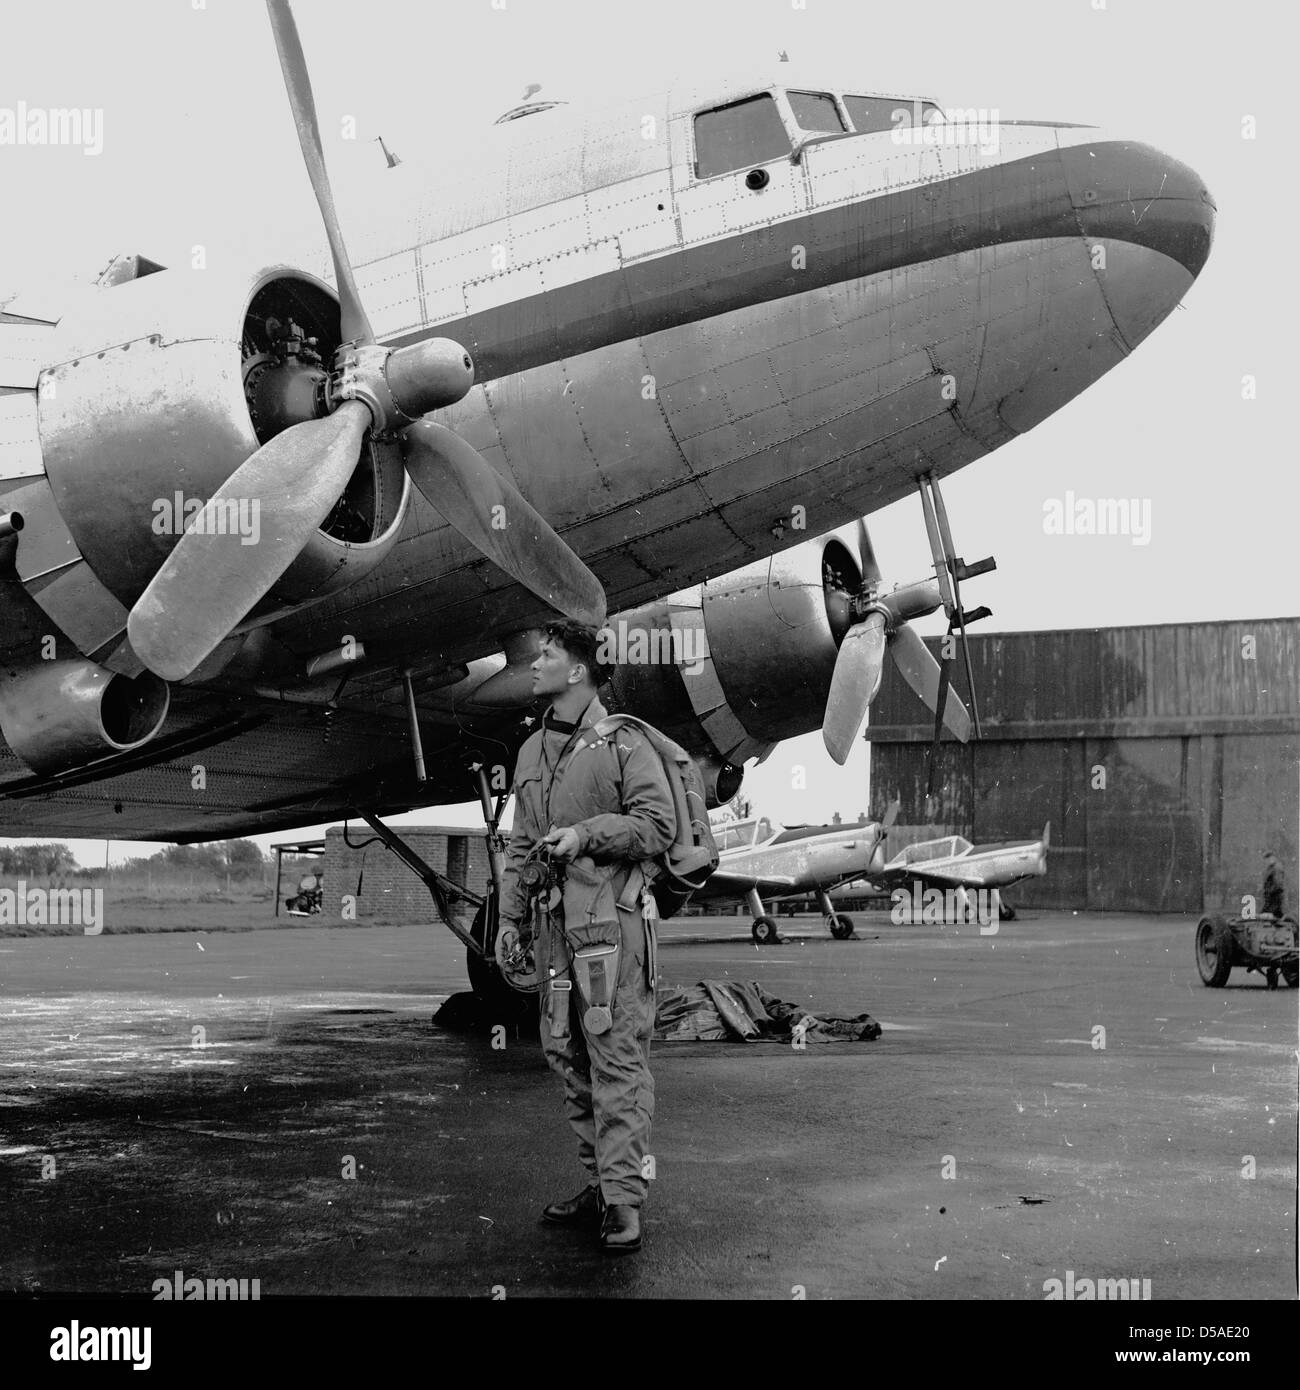 Historical 1950s. Flying. Young student pilot in flying clothing looks up a stationary aircraft on the runaway. Stock Photo